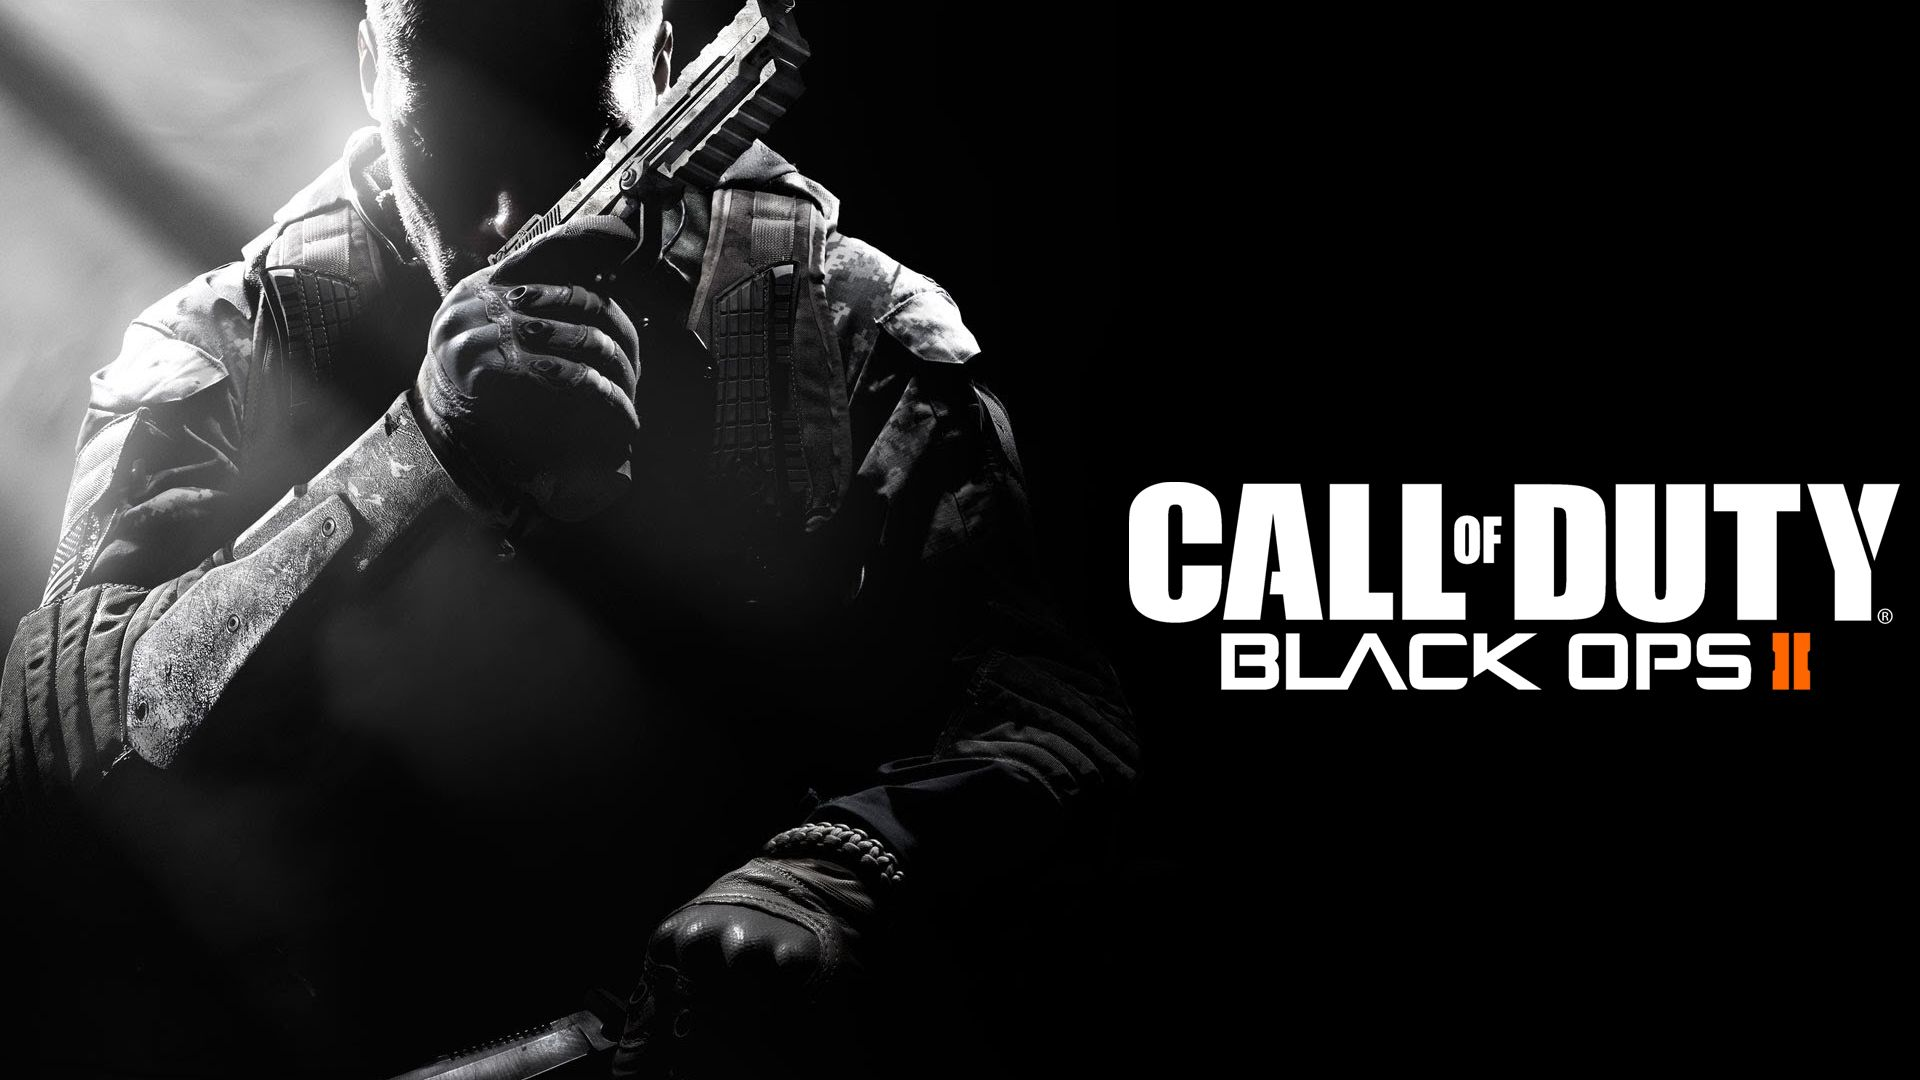 Cool Black Ops 2 Wallpaper Posted By Ryan Tremblay